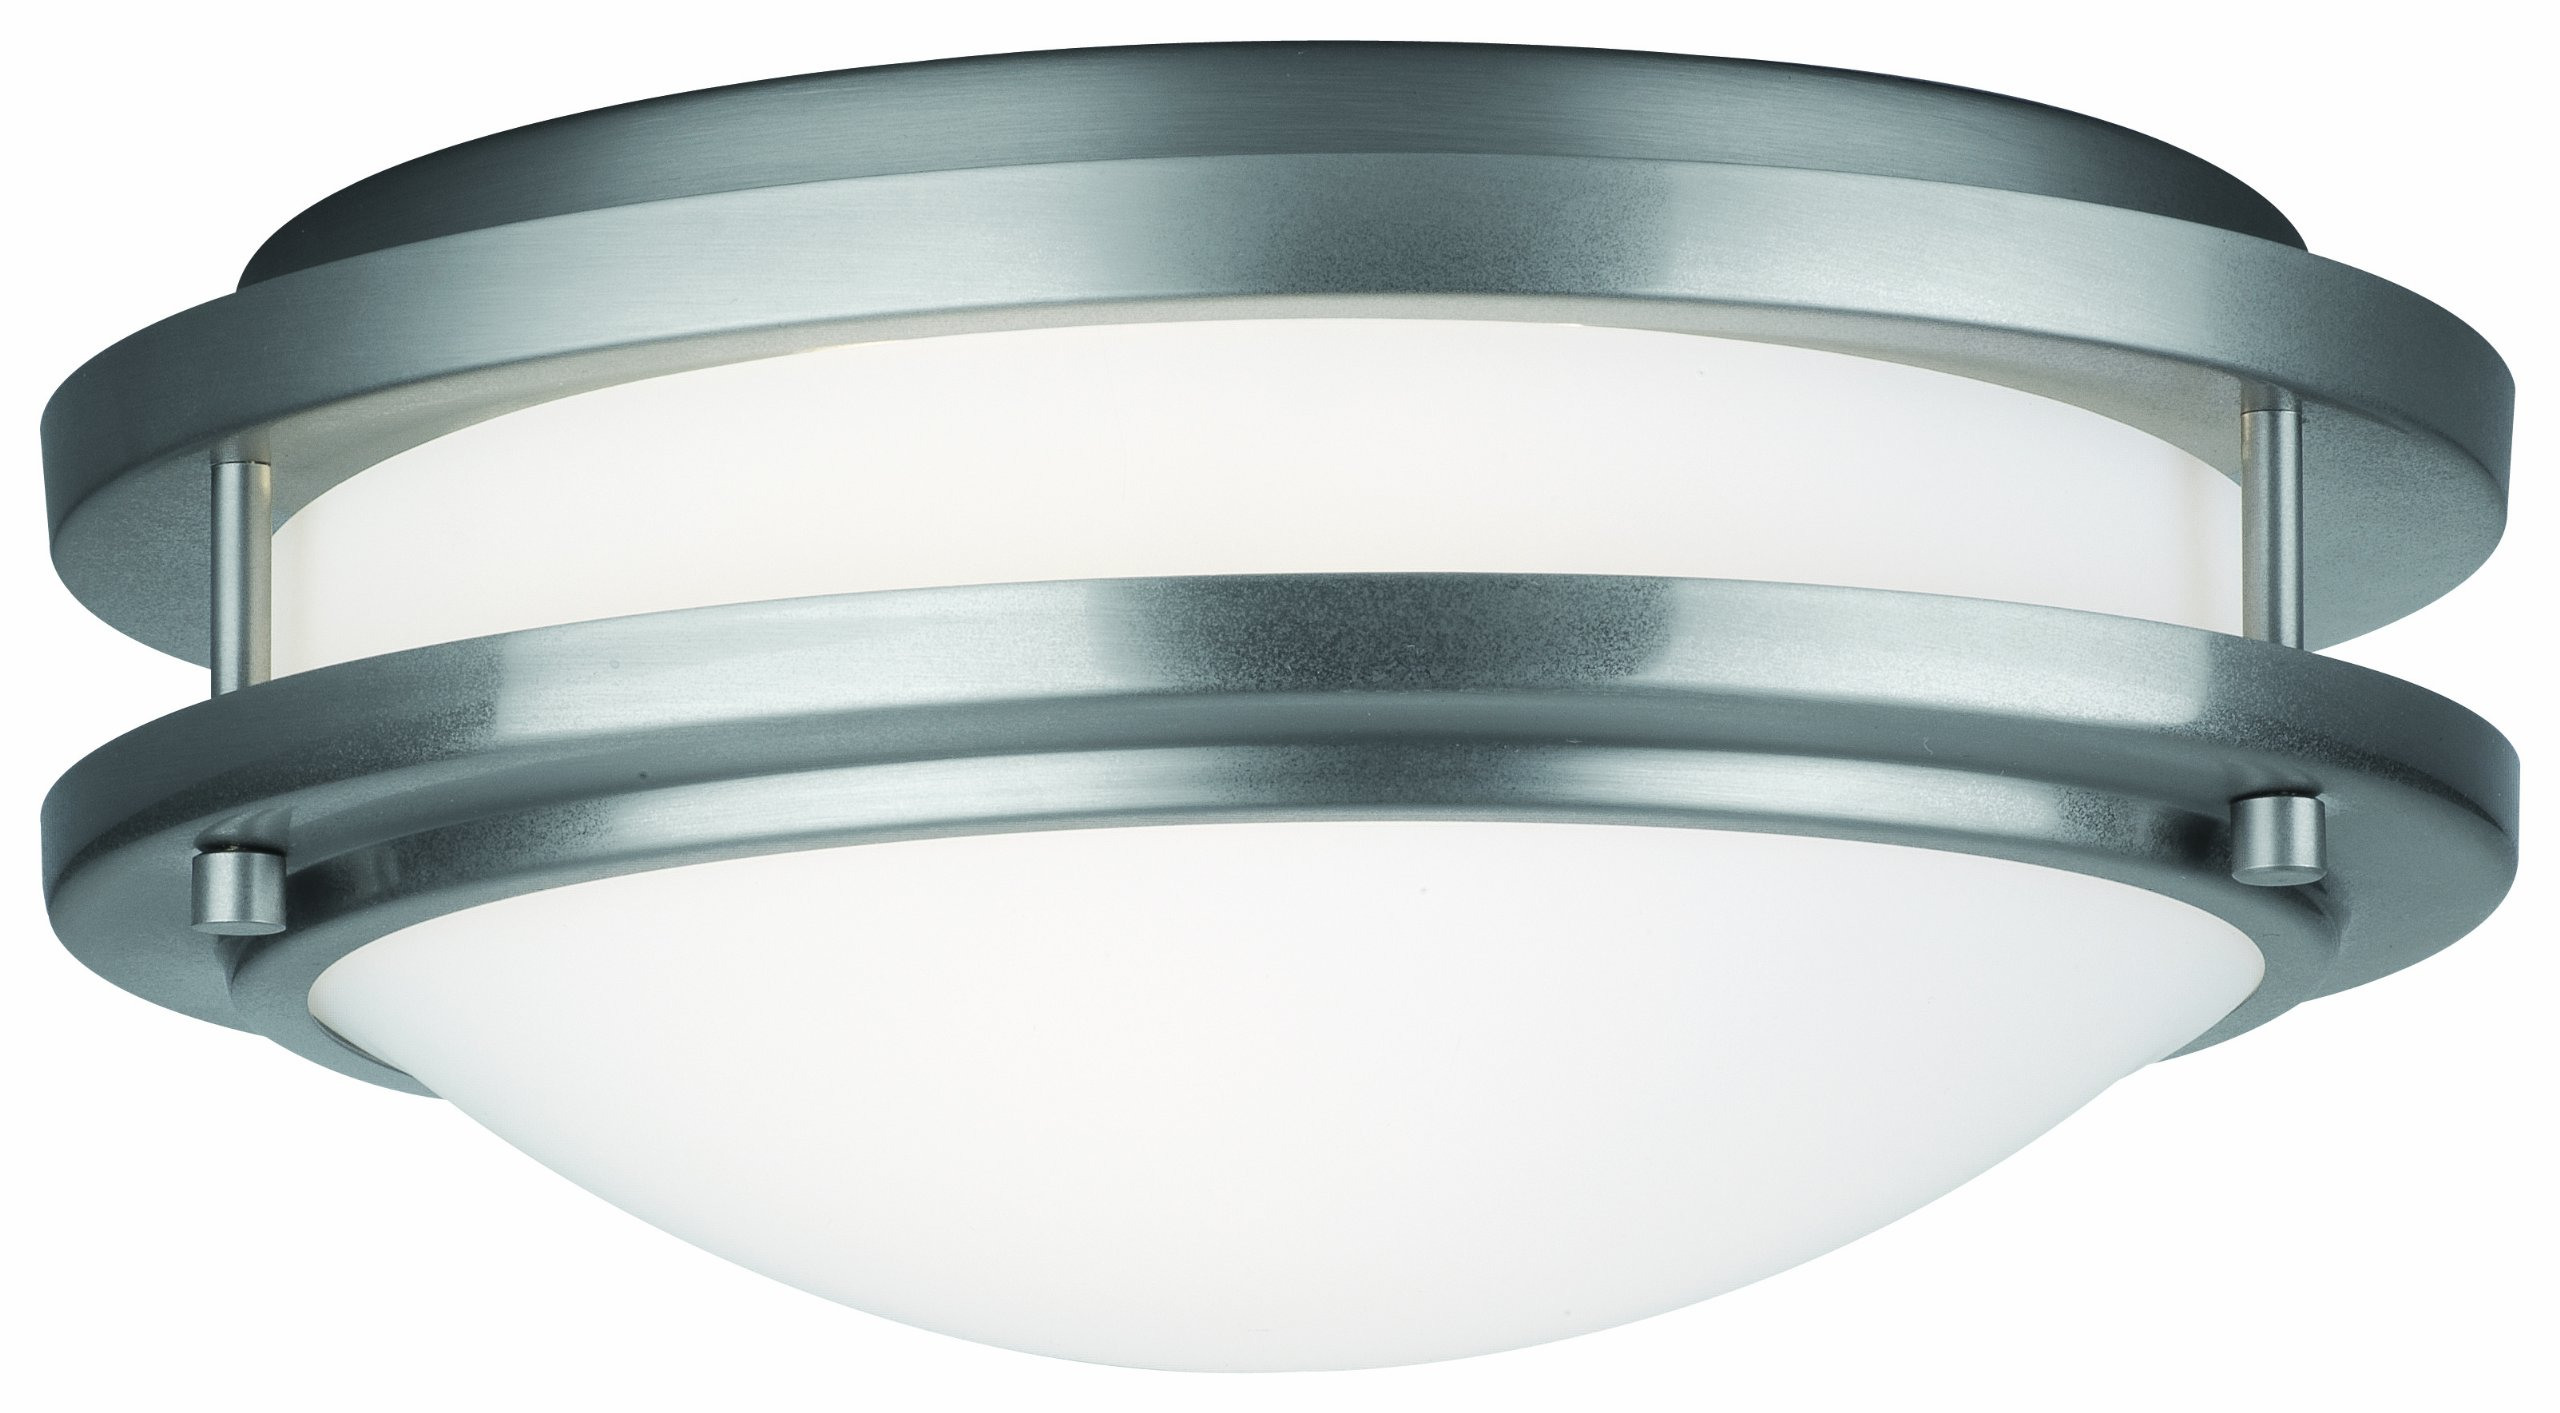 Philips Forecast F245536U Cambridge Ceiling Light, Satin Nickel